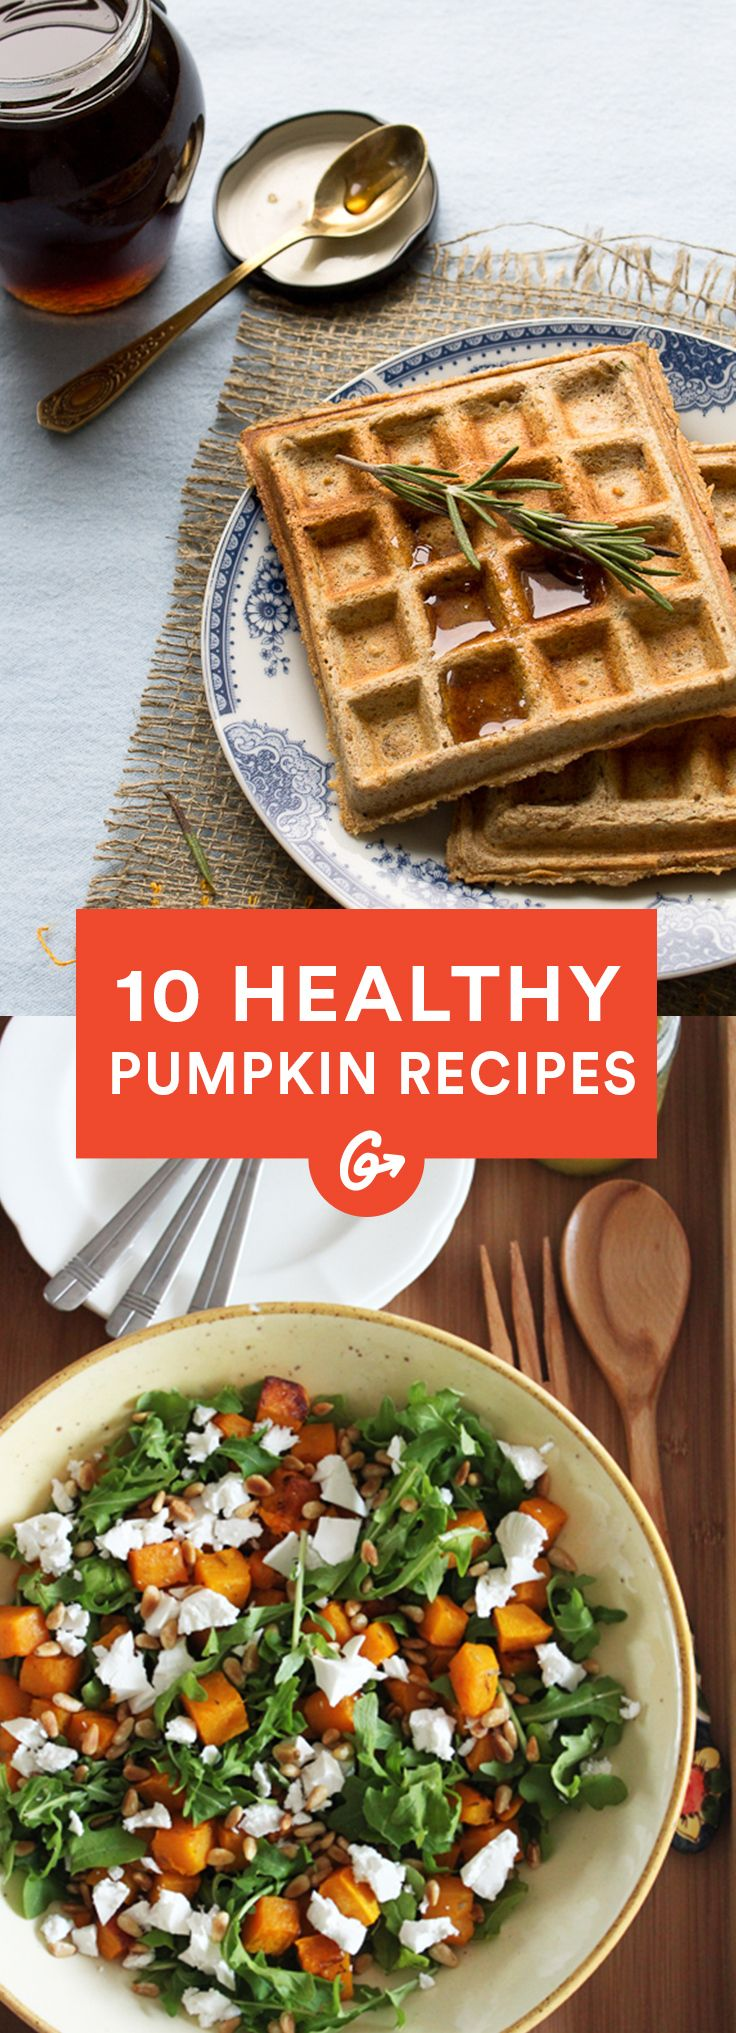 Pump Up the Pumpkin #healthy #pumpkin #recipes http://greatist.com/health/best-healthy-pumpkin-recipes-102113